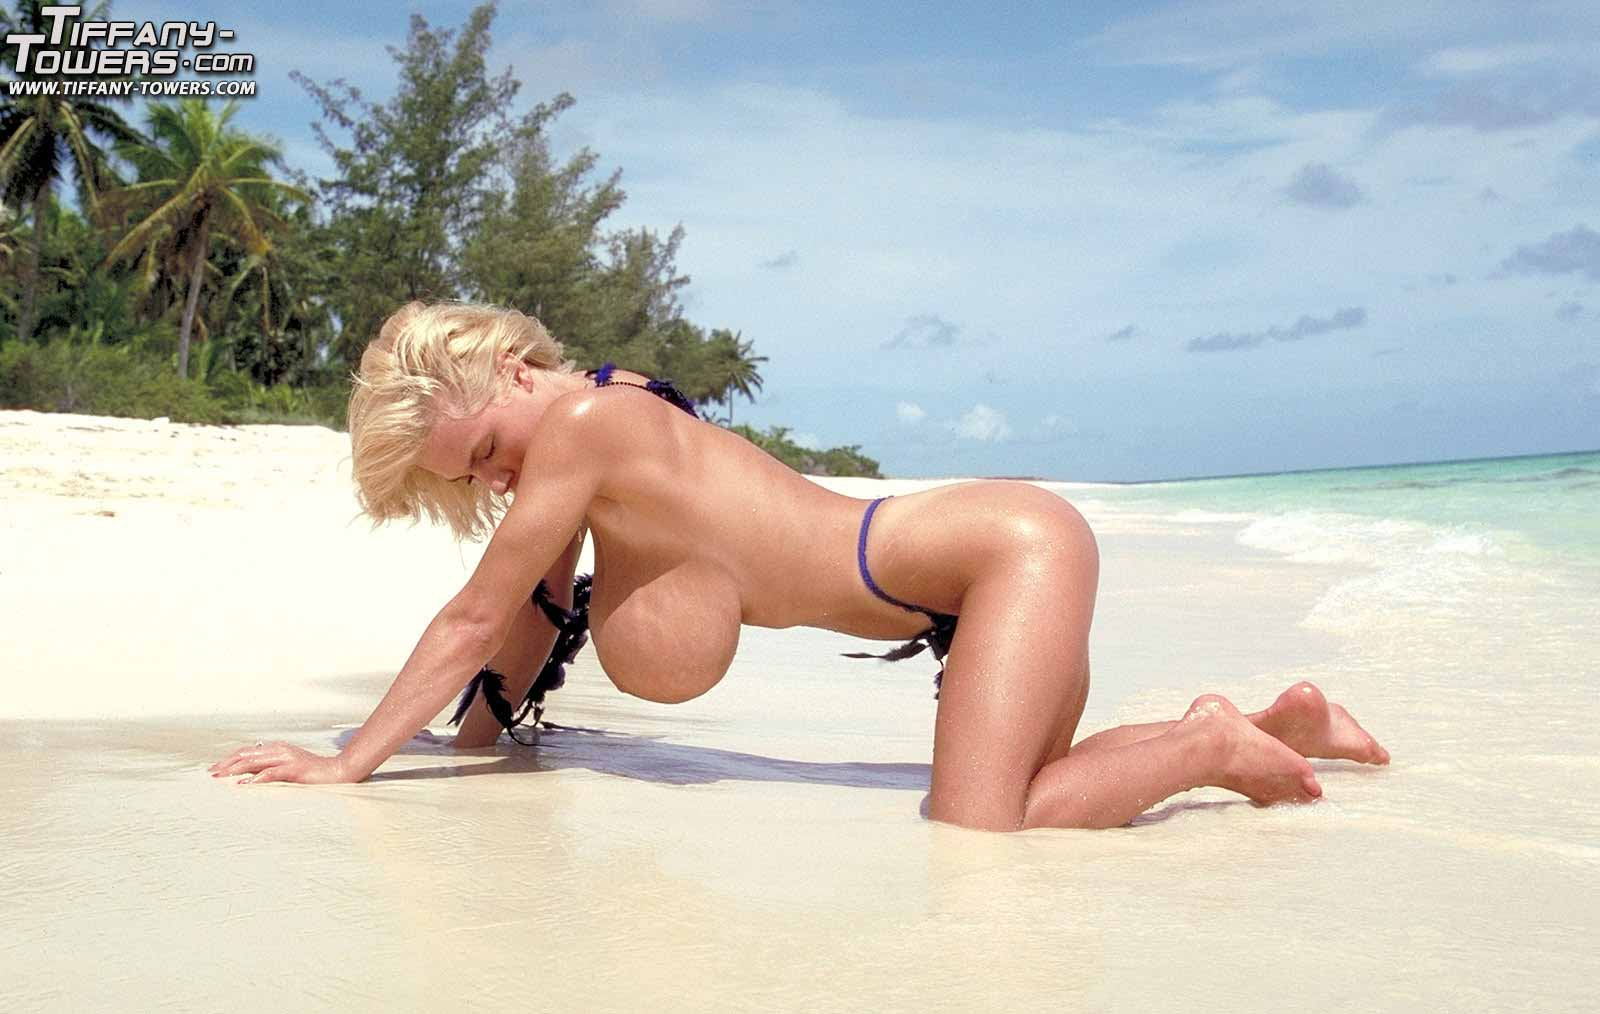 tiffany-towers-poses-on-the-beaches-of-eleuthera-island-10